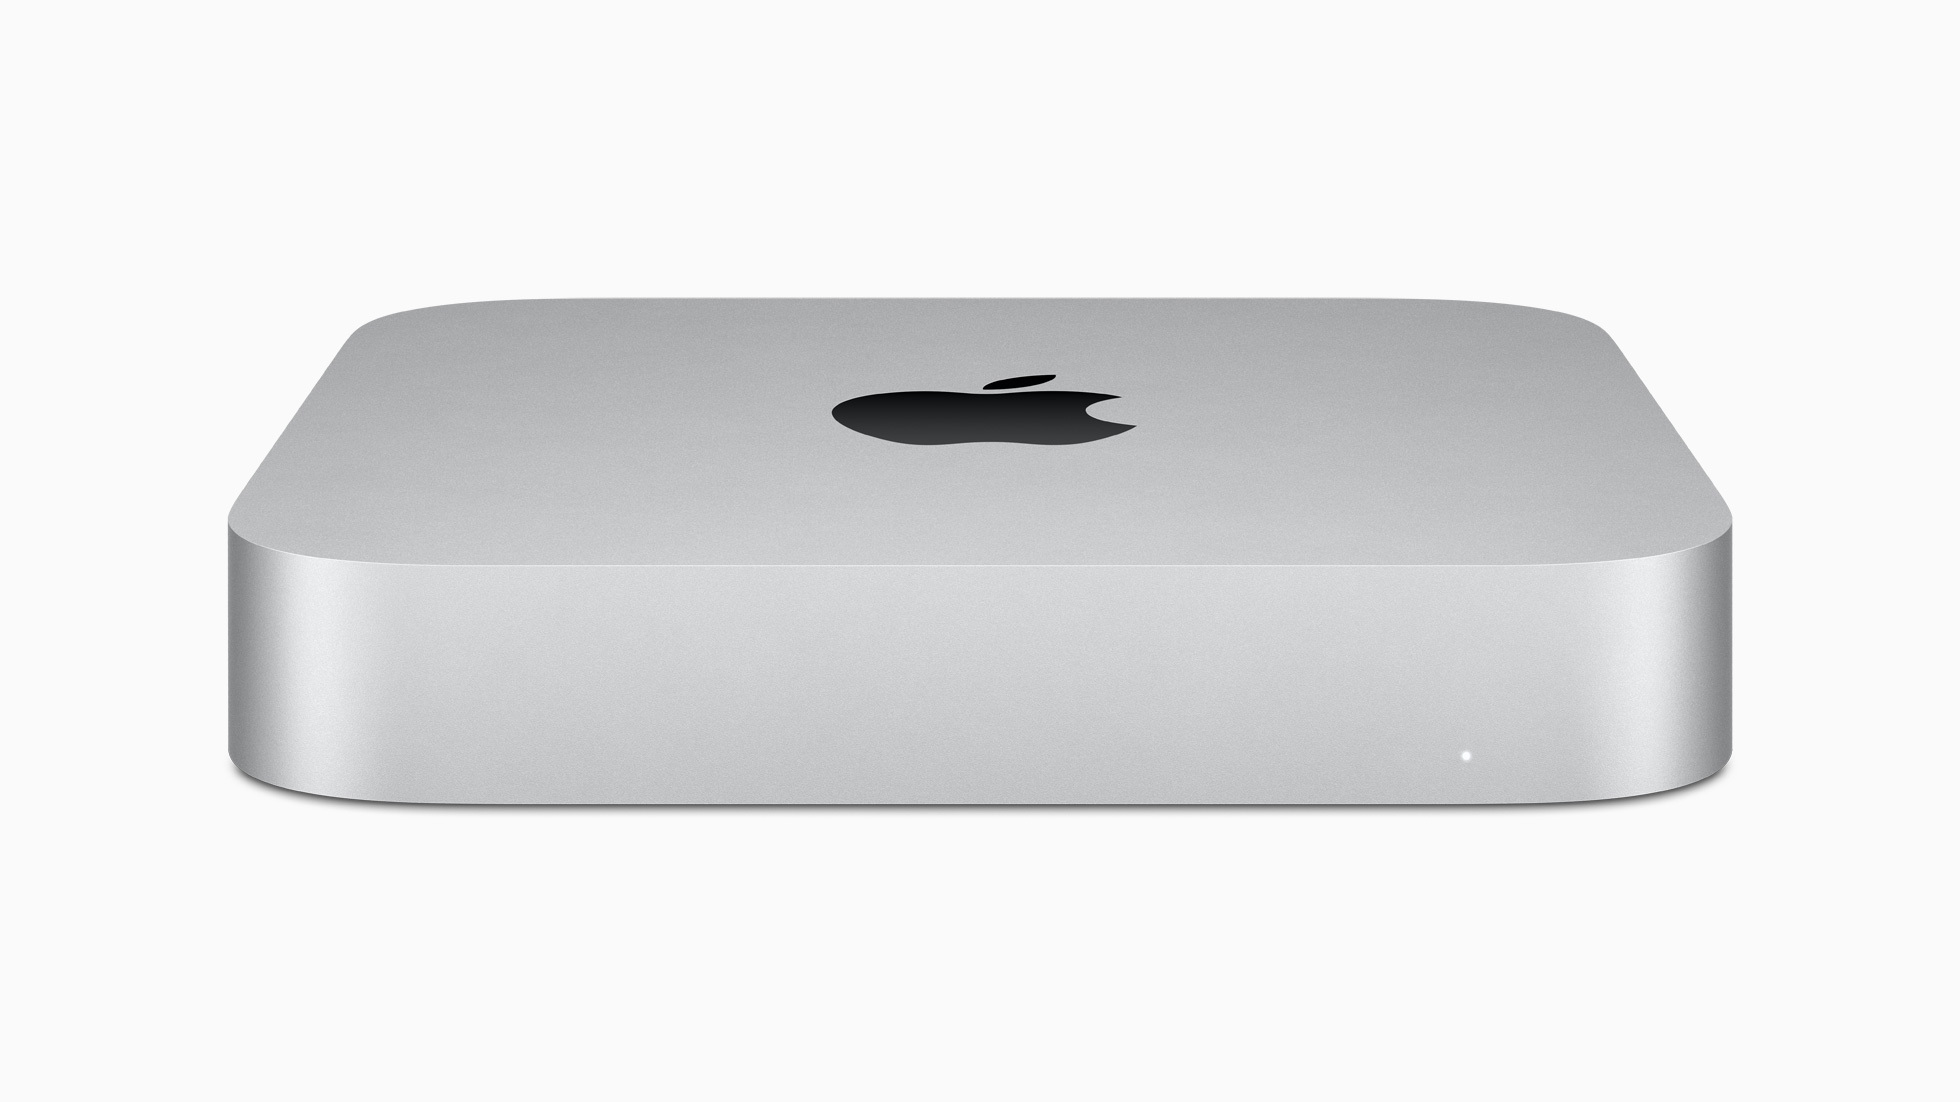 The Mac mini is getting a redesign and more ports, new report claims.